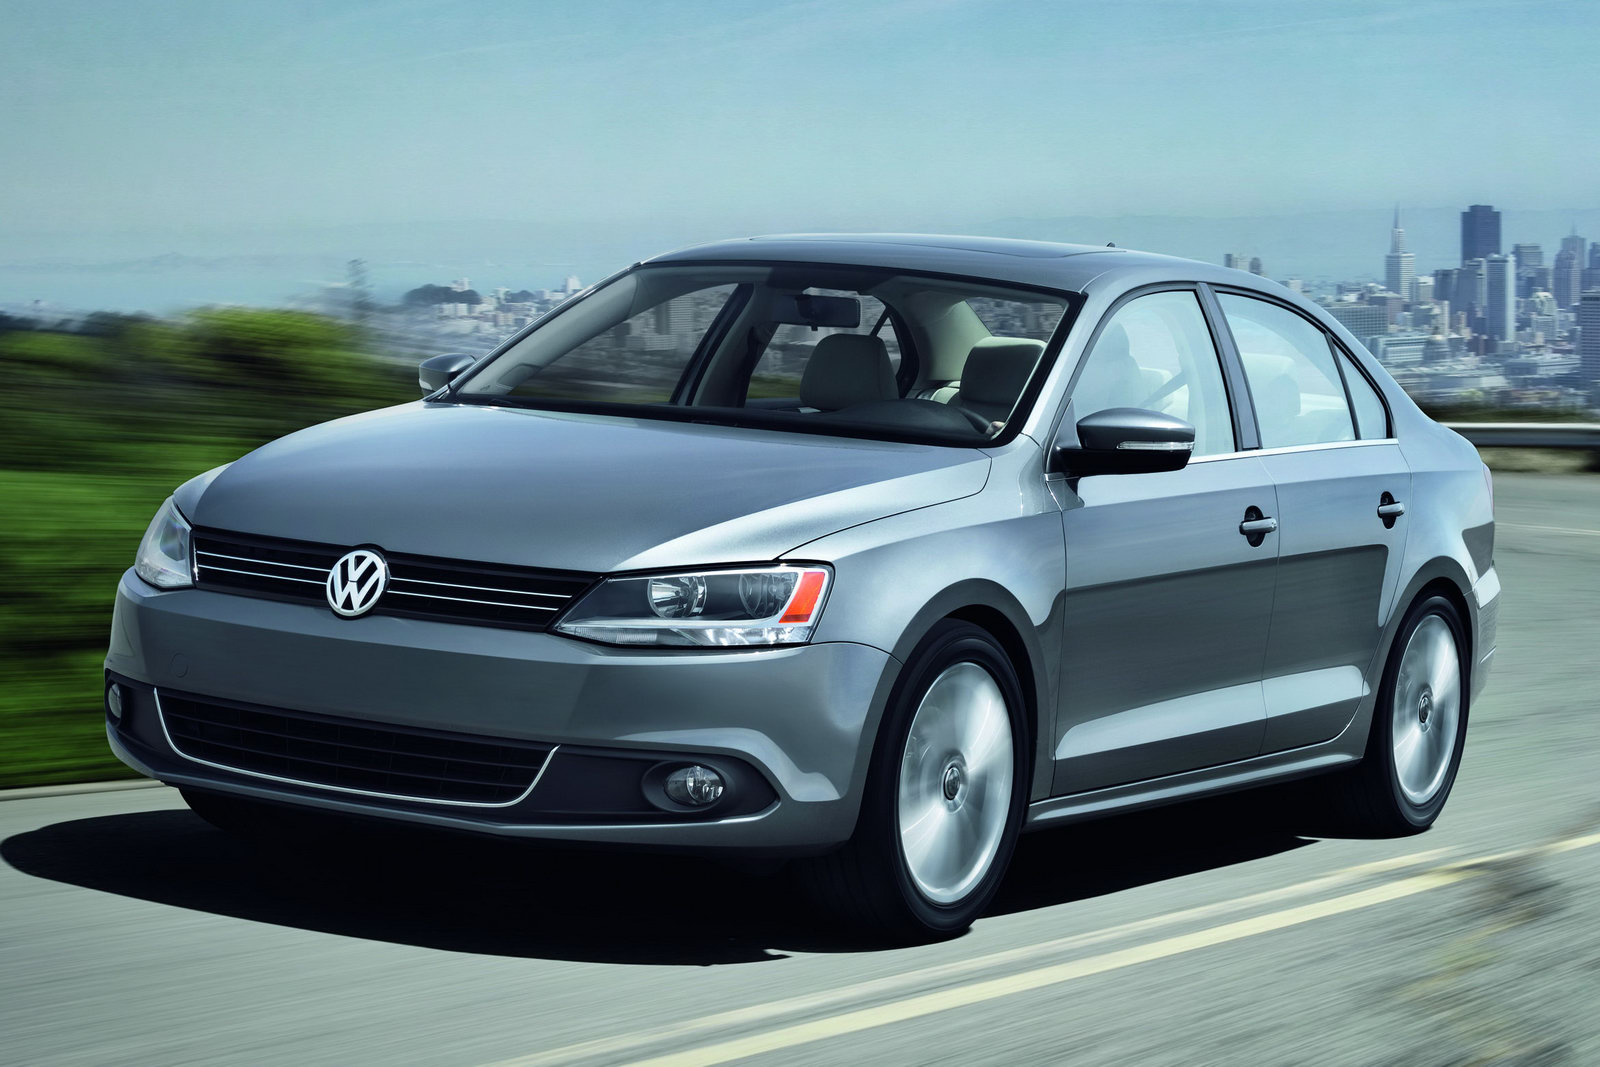 2011 vw jetta sedan officially revealed will start from 15 995 in the u s. Black Bedroom Furniture Sets. Home Design Ideas